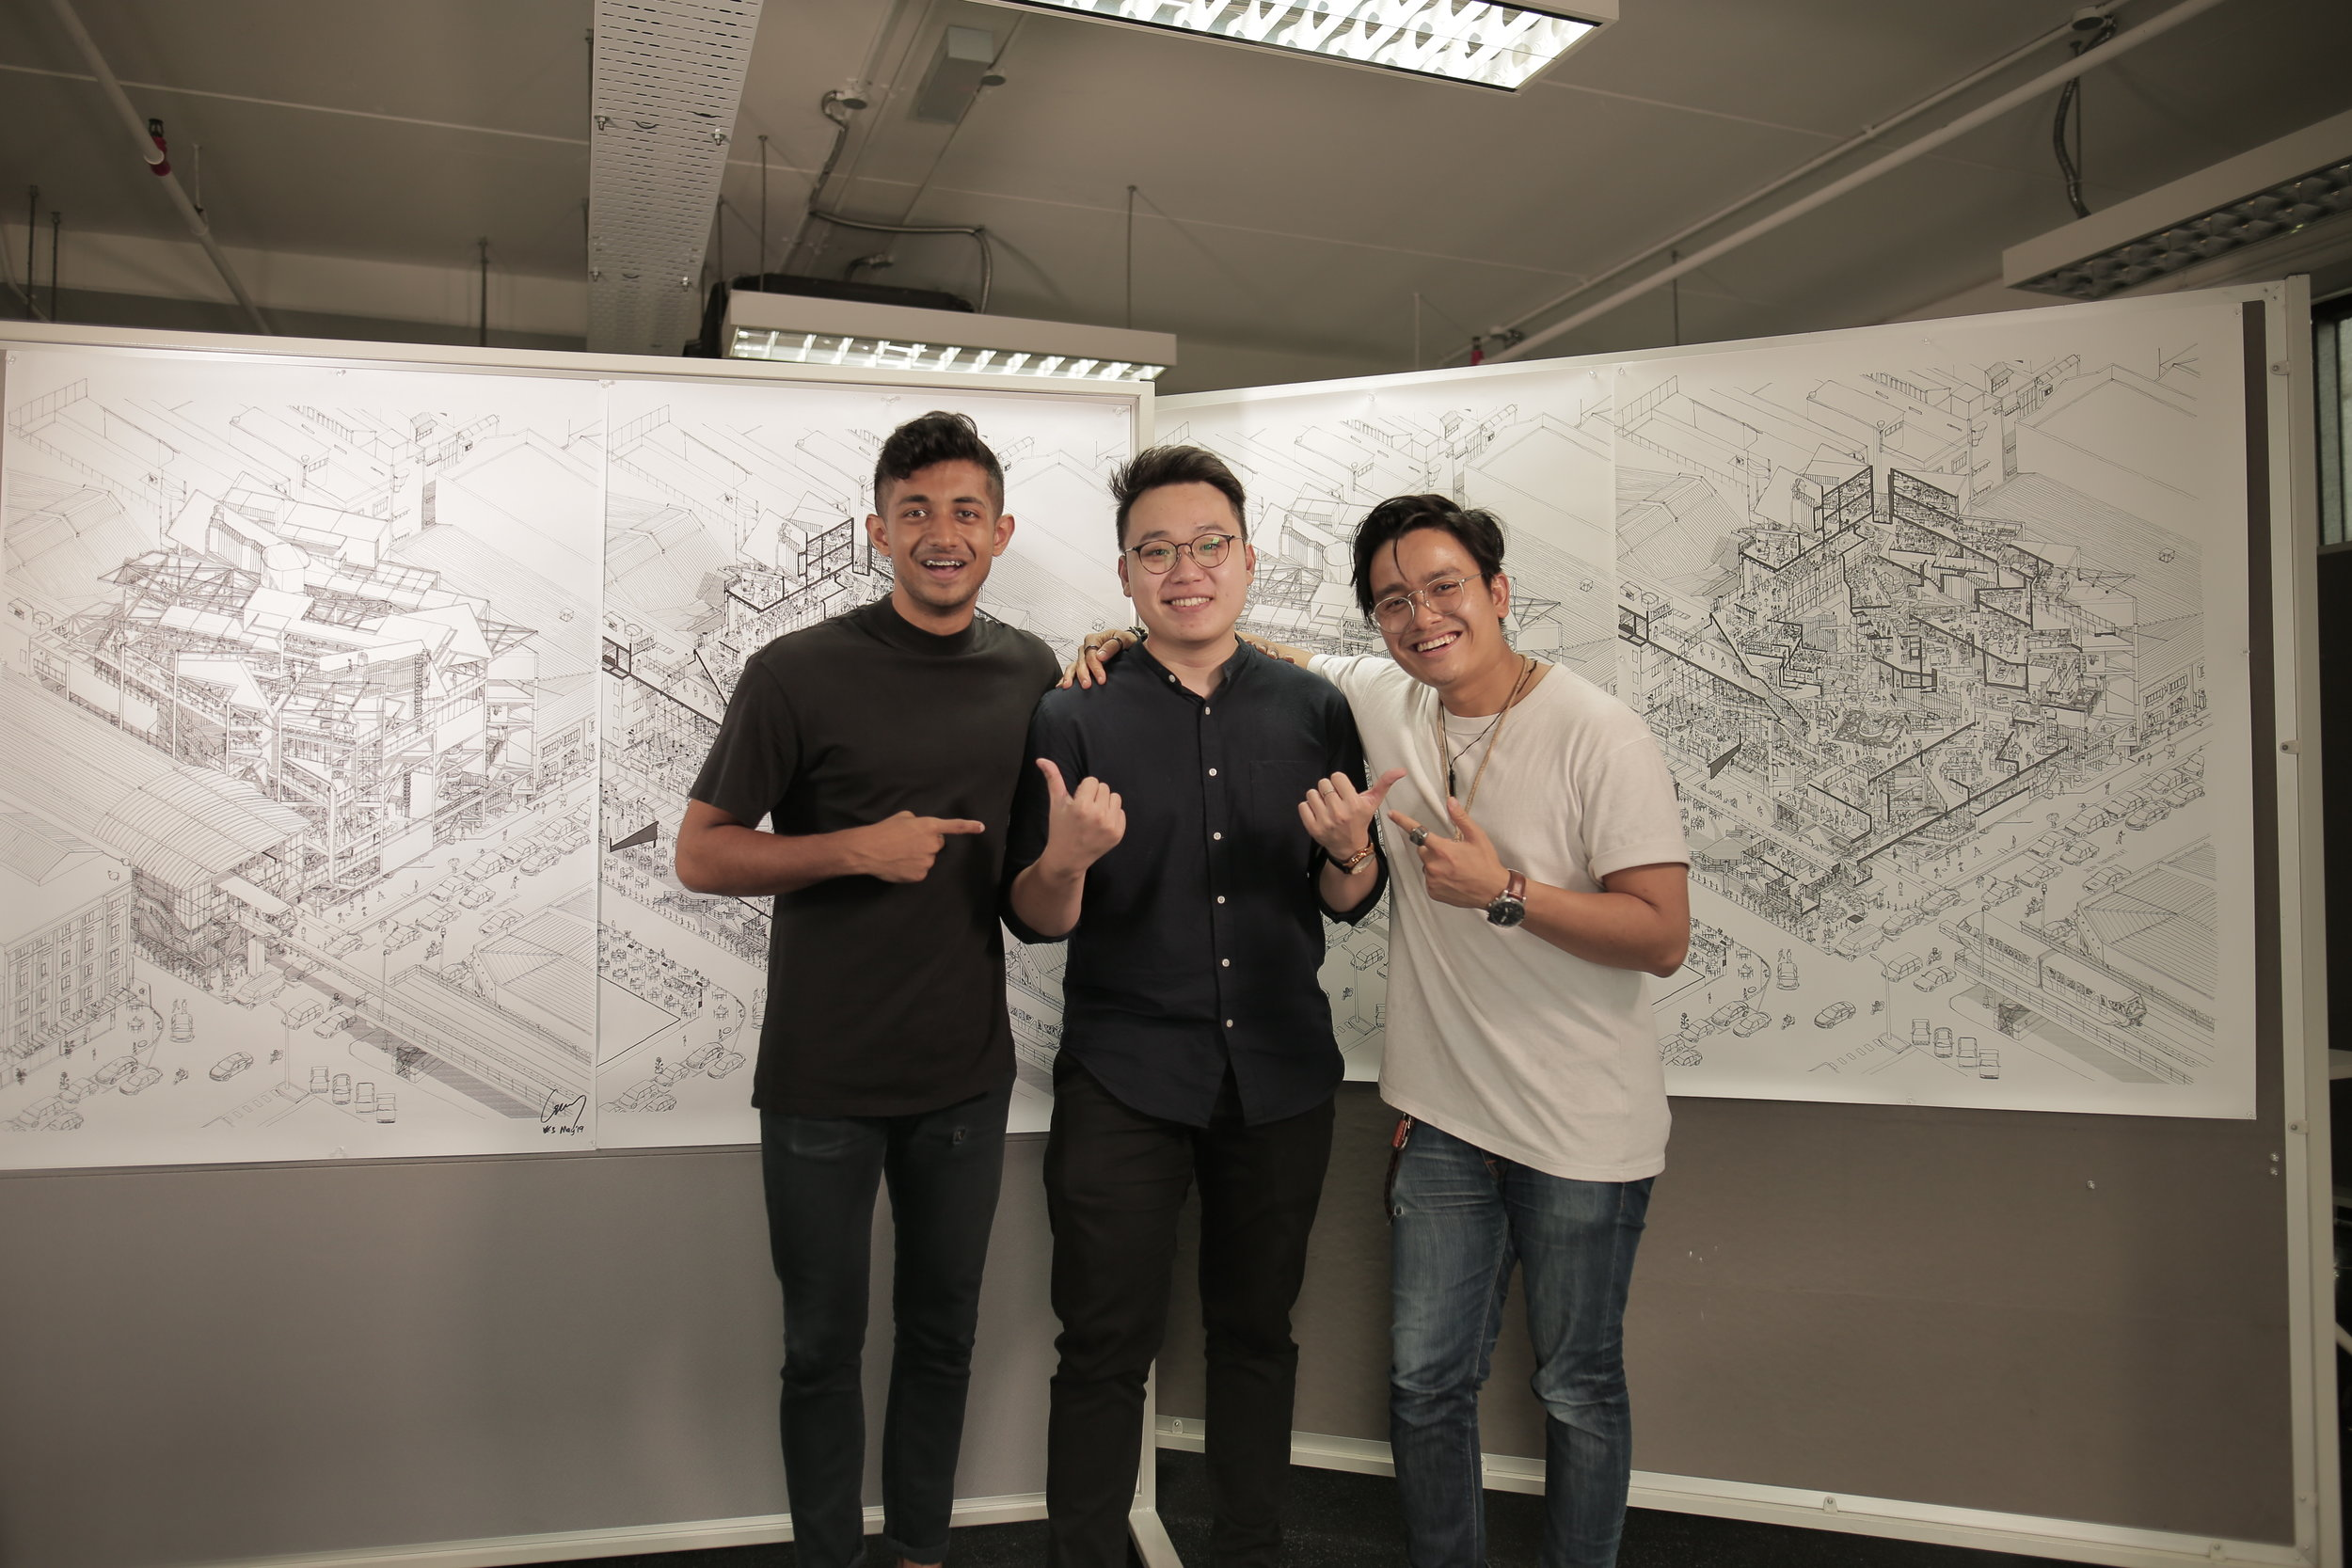 The talented team behind the video!  Left - Darren Arvid of Pathera, Right - Razlan Yusof of Creative Match Photo taken by Razlan Yusof